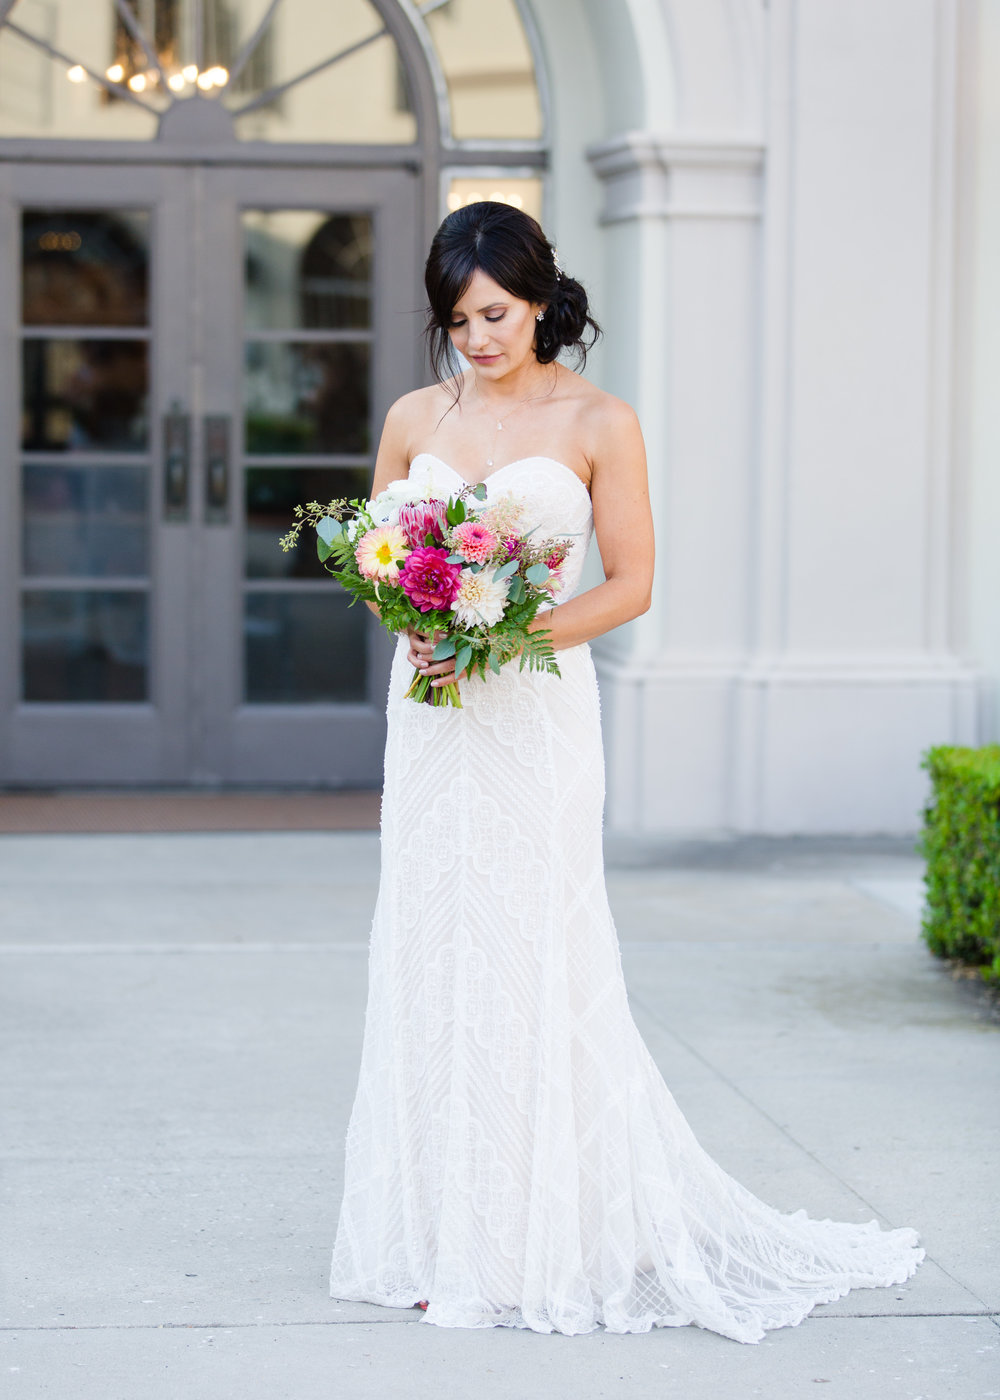 We are absolutely in LOVE with her lace and jeweled gown from The White Dress. This style gives a truly elegant and vintage look that is complimented perfectly with her bouquet of swoon worthy blooms by floral designer Rebecca Eichten.